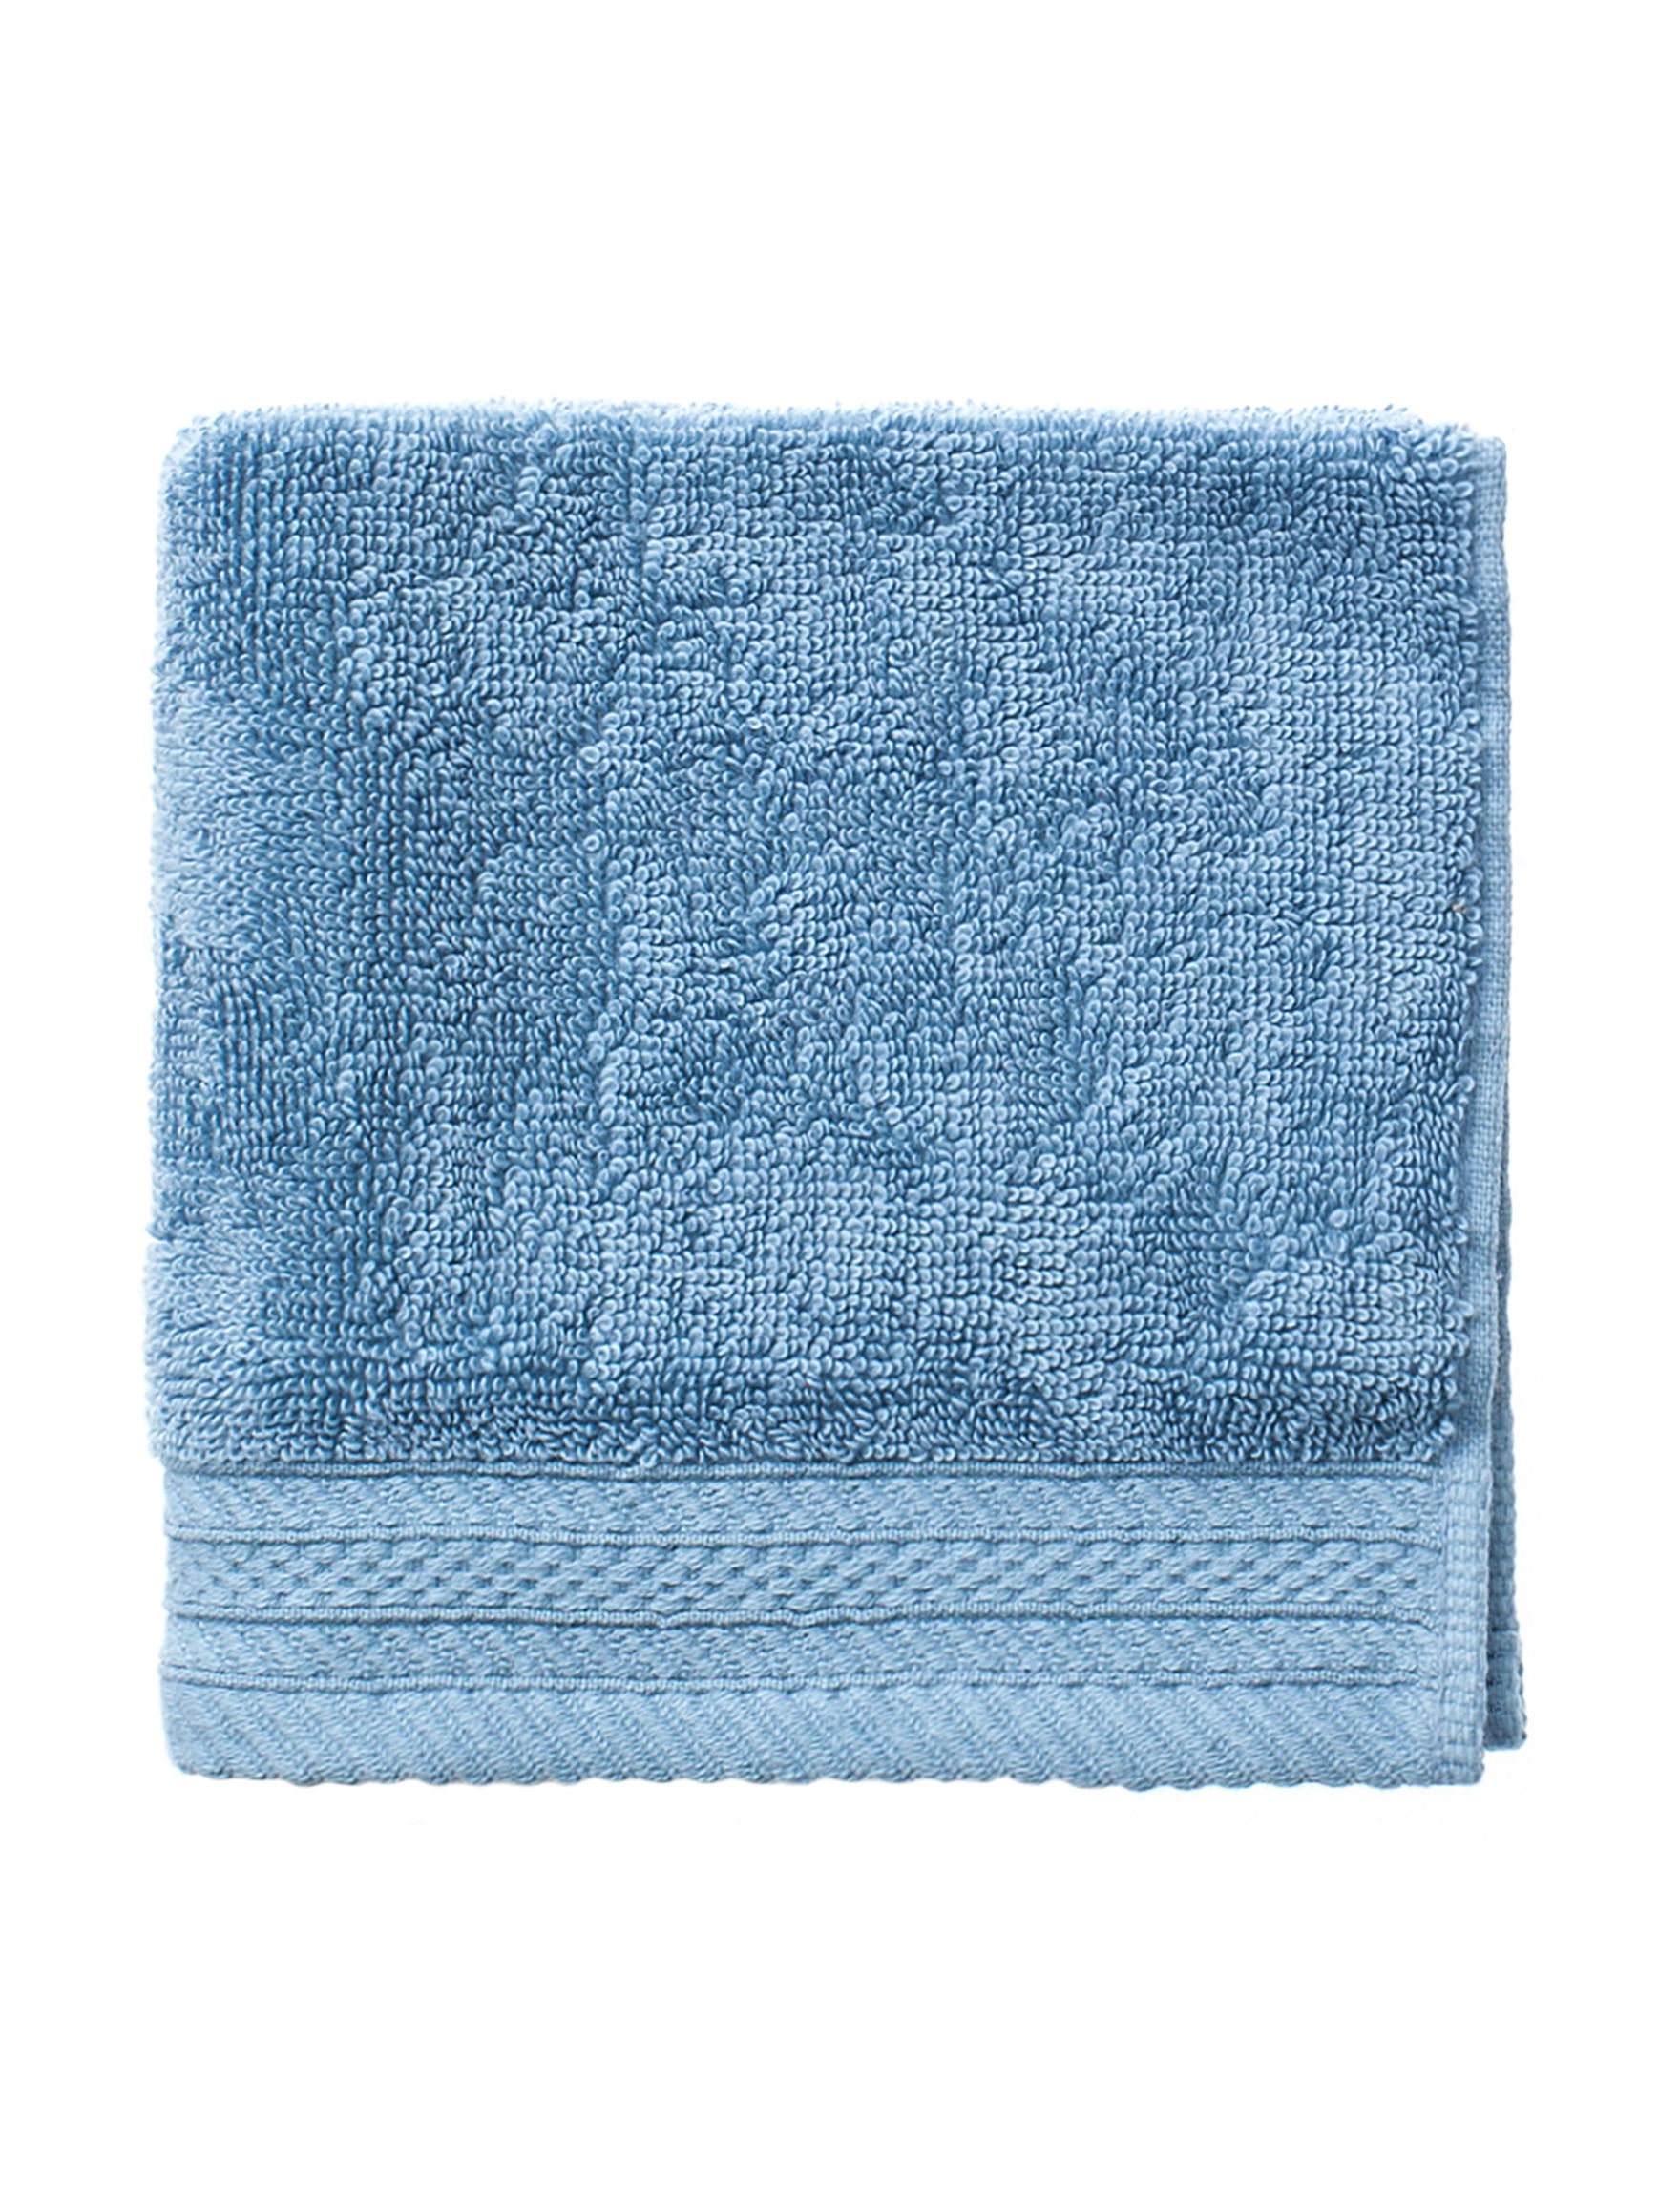 Great Hotels Collection Slate Blue Washcloths Towels